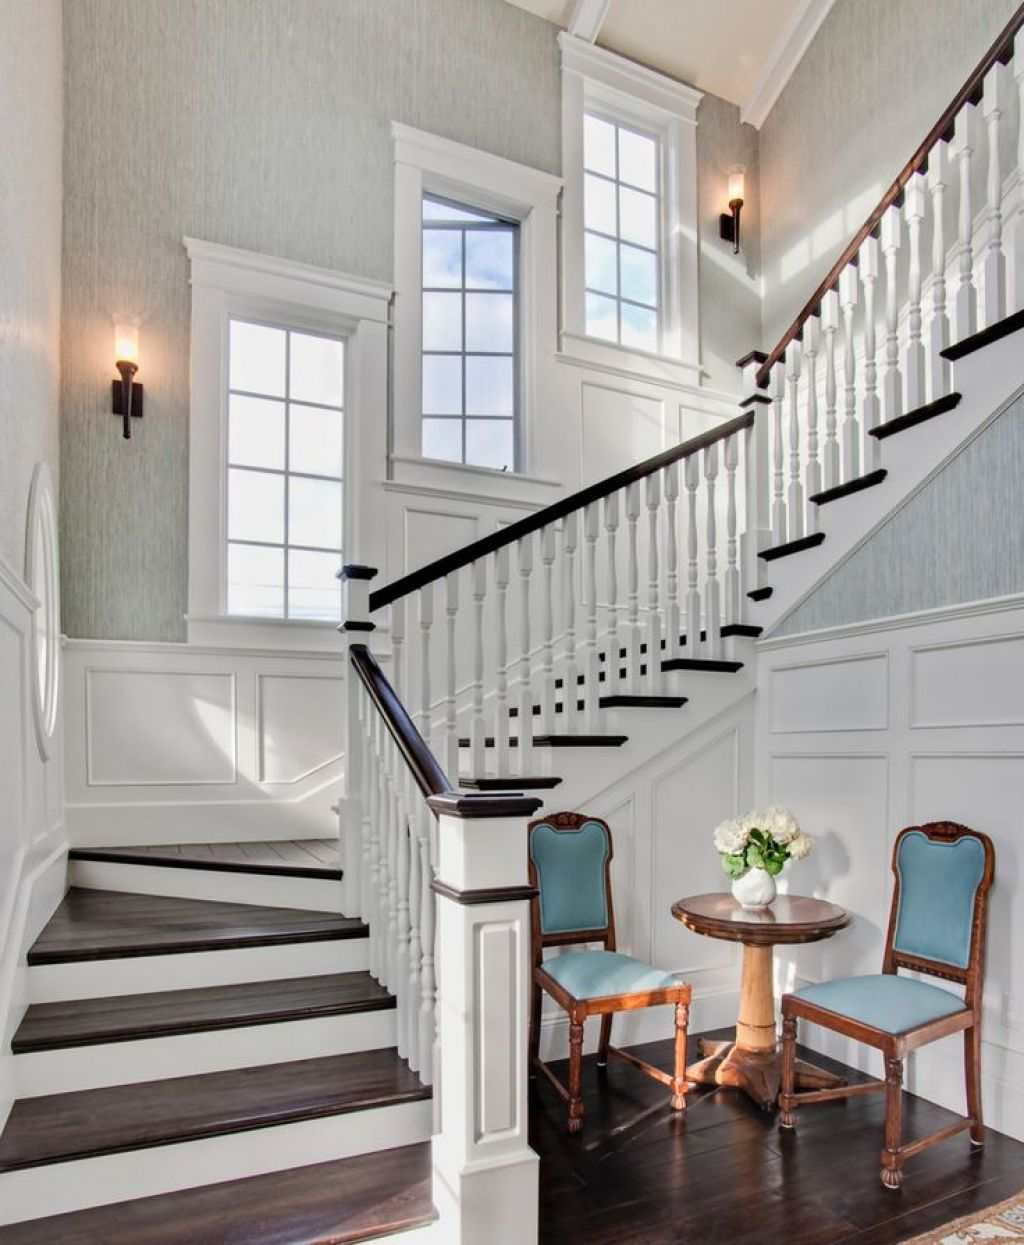 20 Excellent Traditional Staircases Design Ideas: Selecting Window Replacement For Your Old Windows